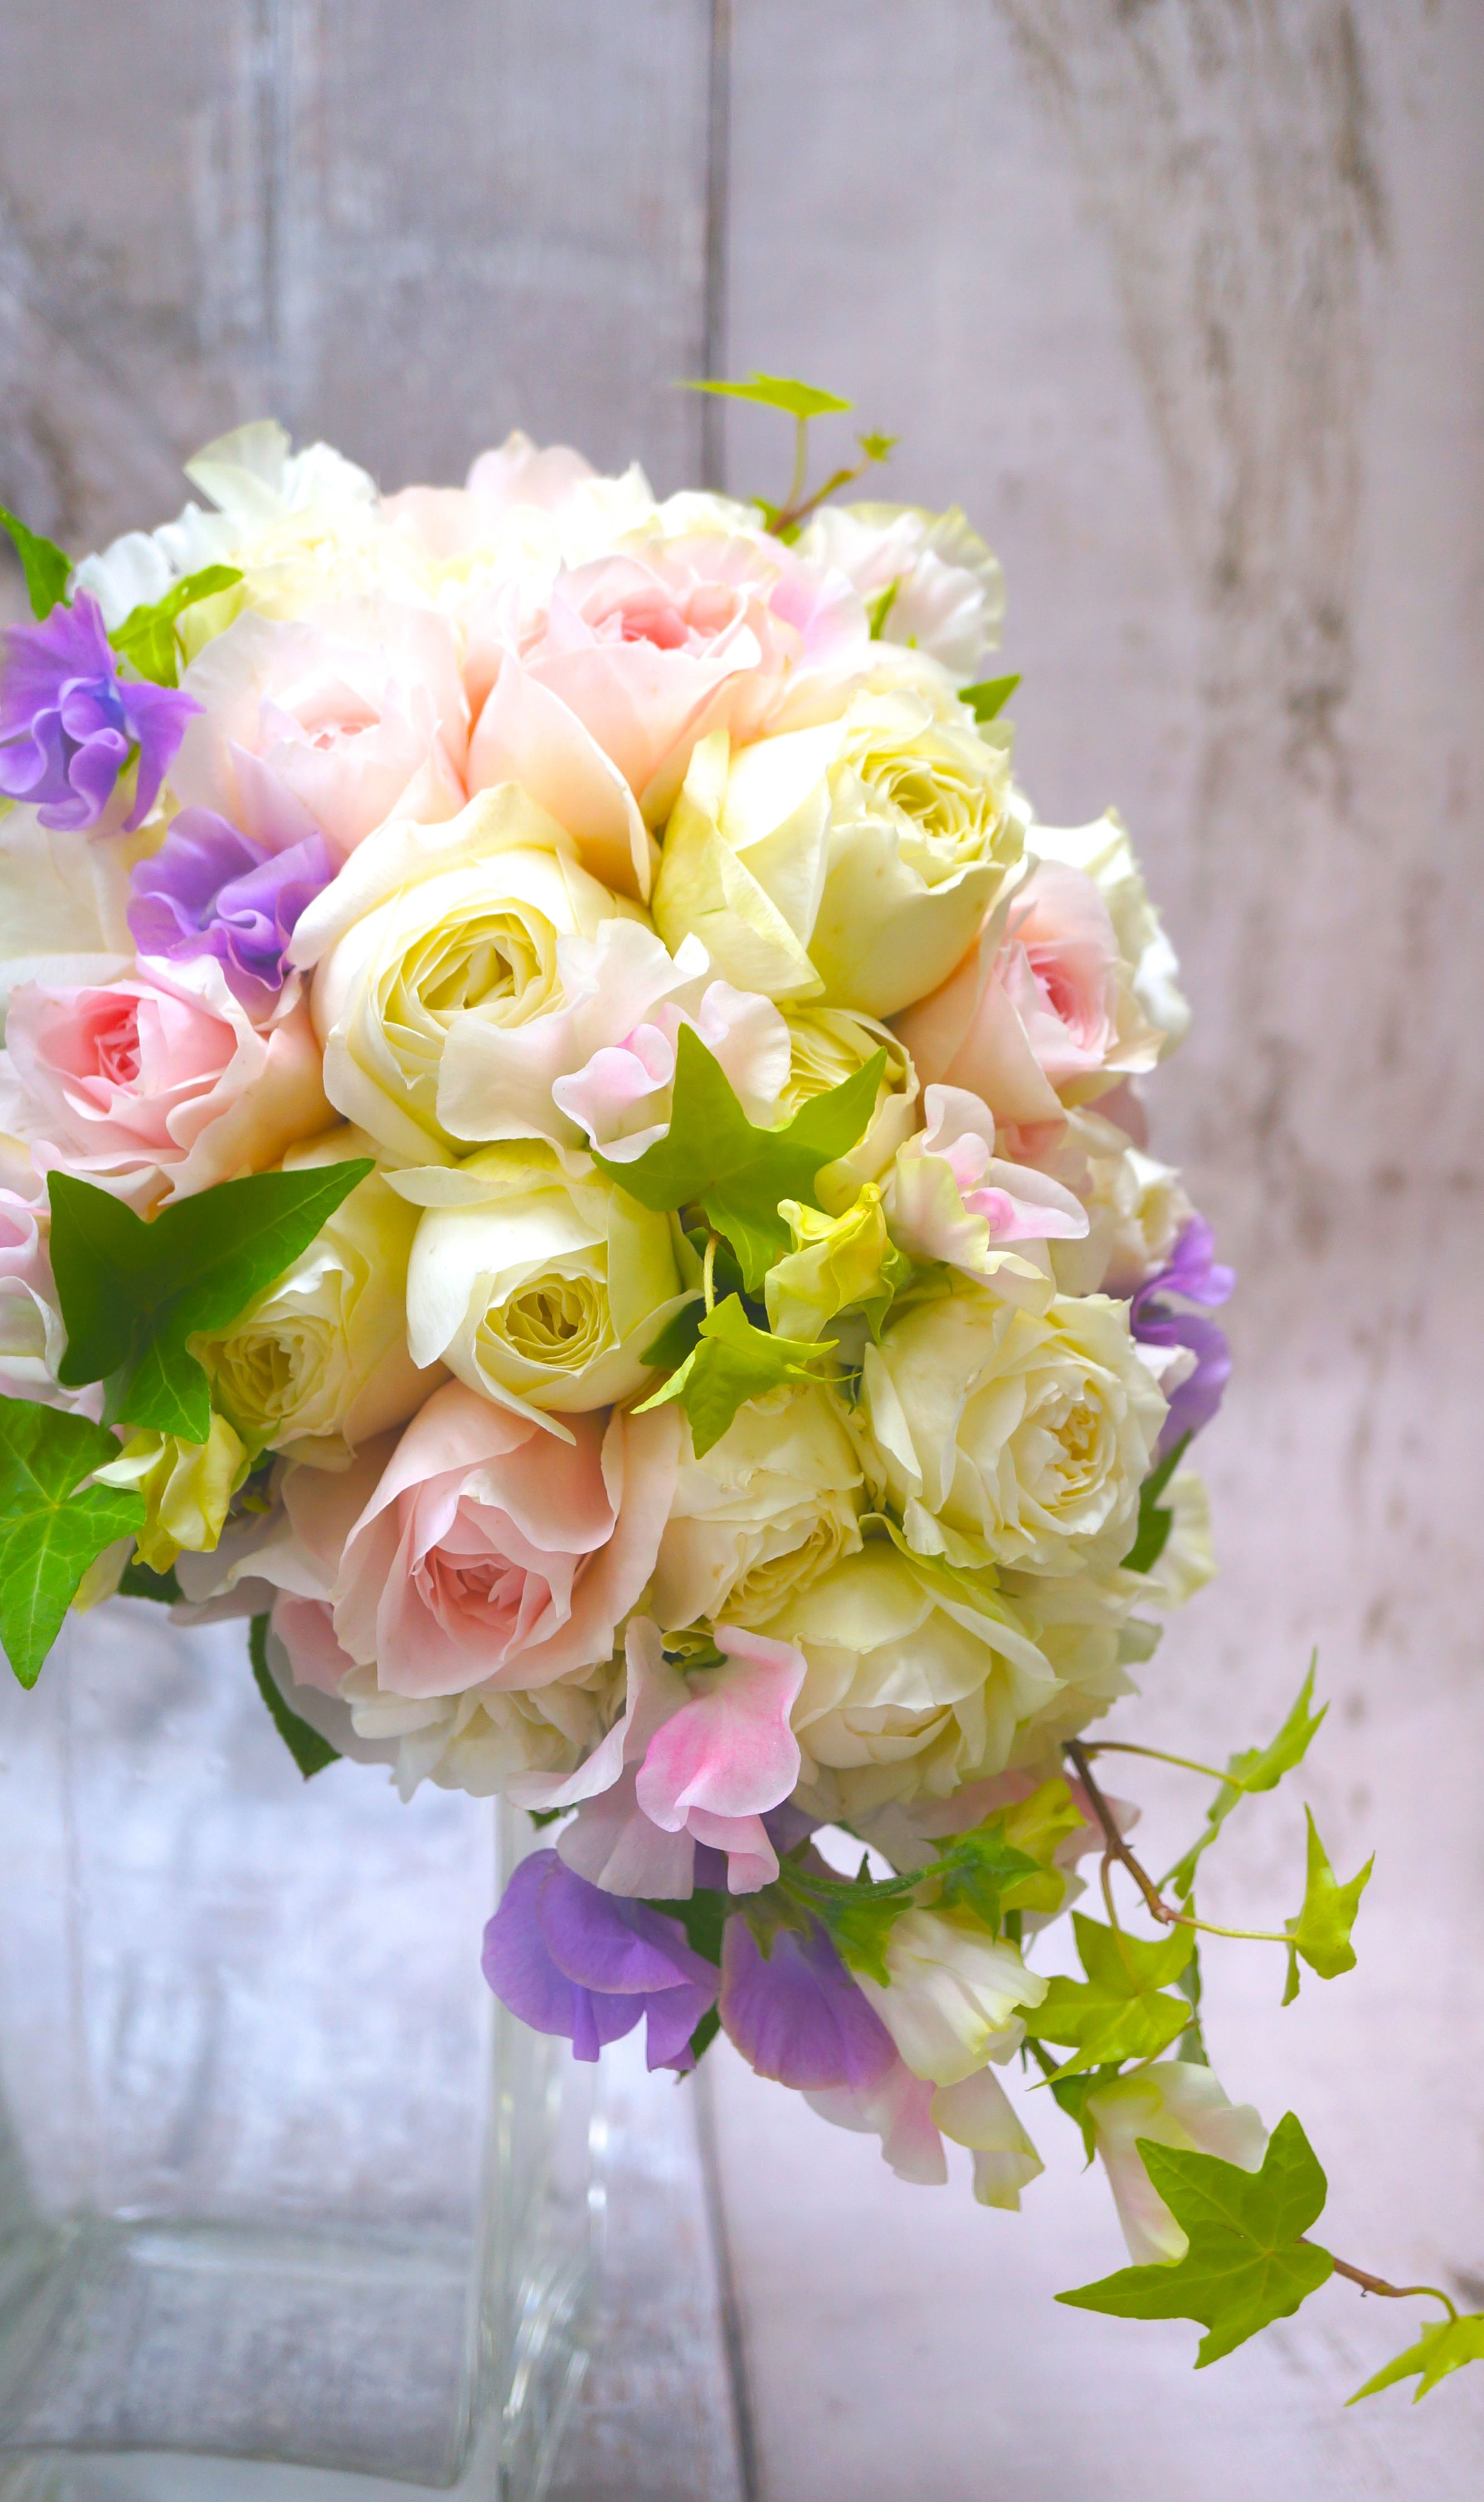 wedding flowers and bouquets sakie s floral design www hanasakie sakie s 9528